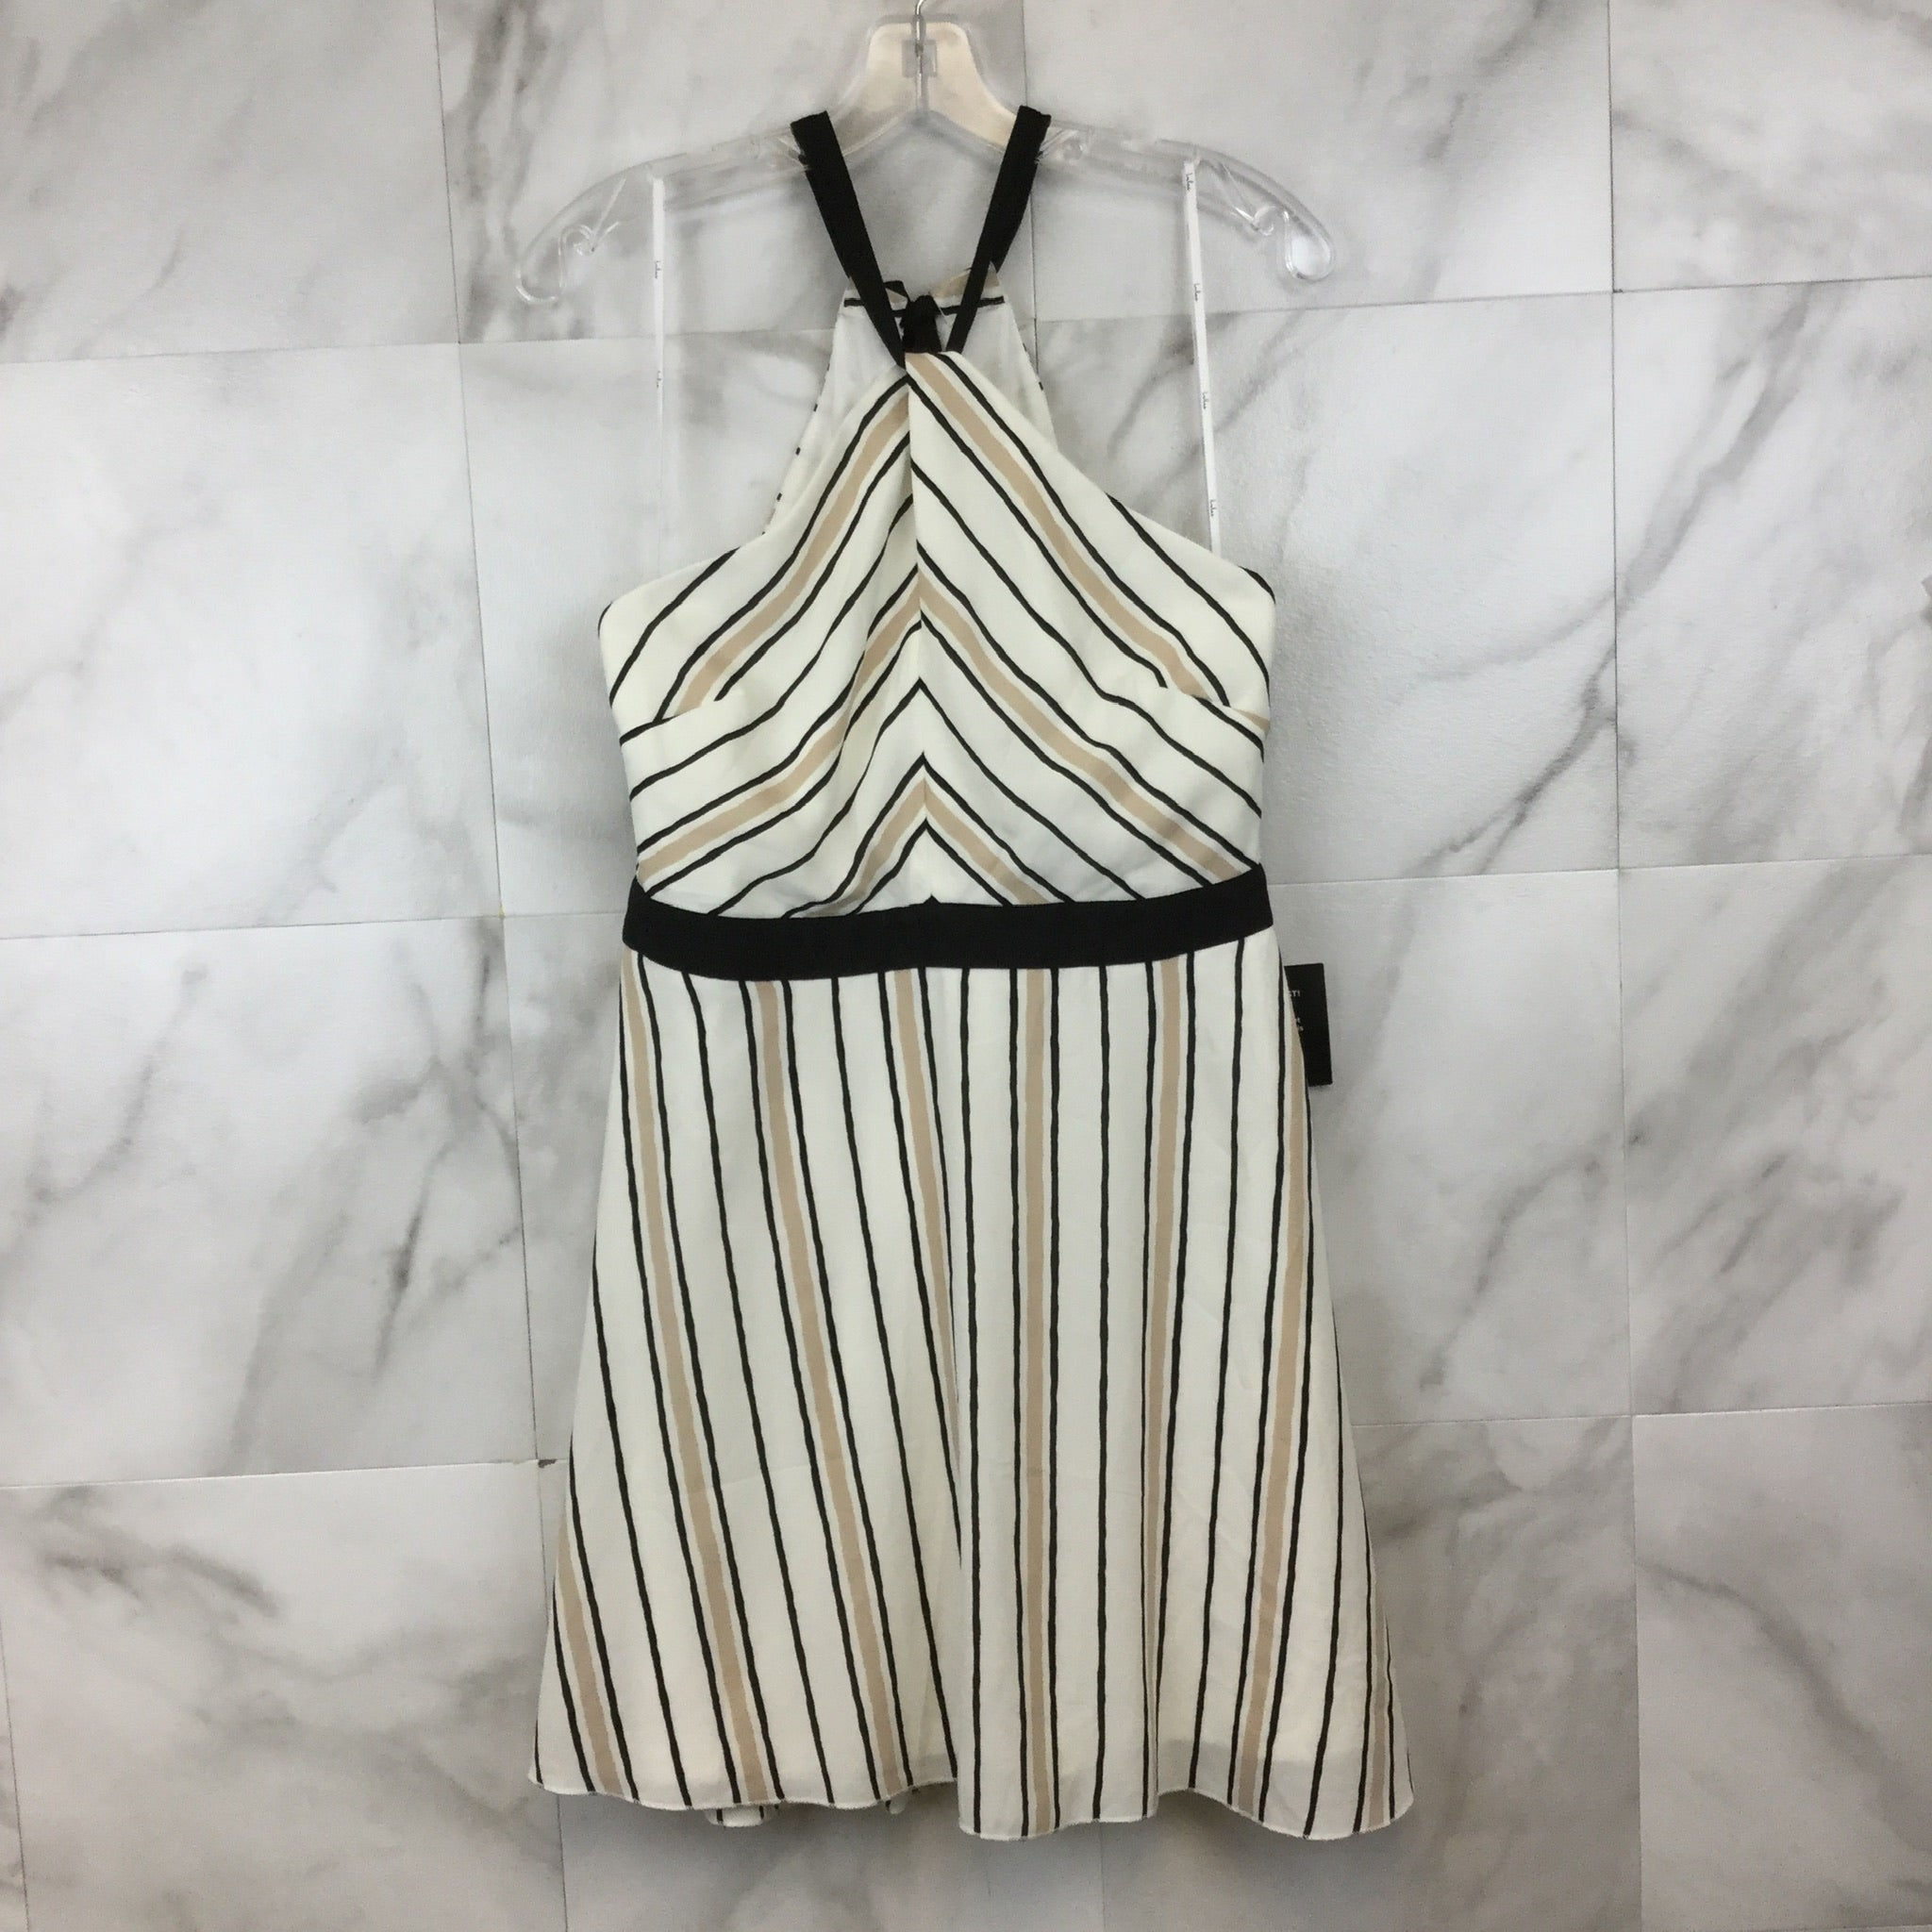 Lulu's Spontaneous Trip Halter Dress- size 14